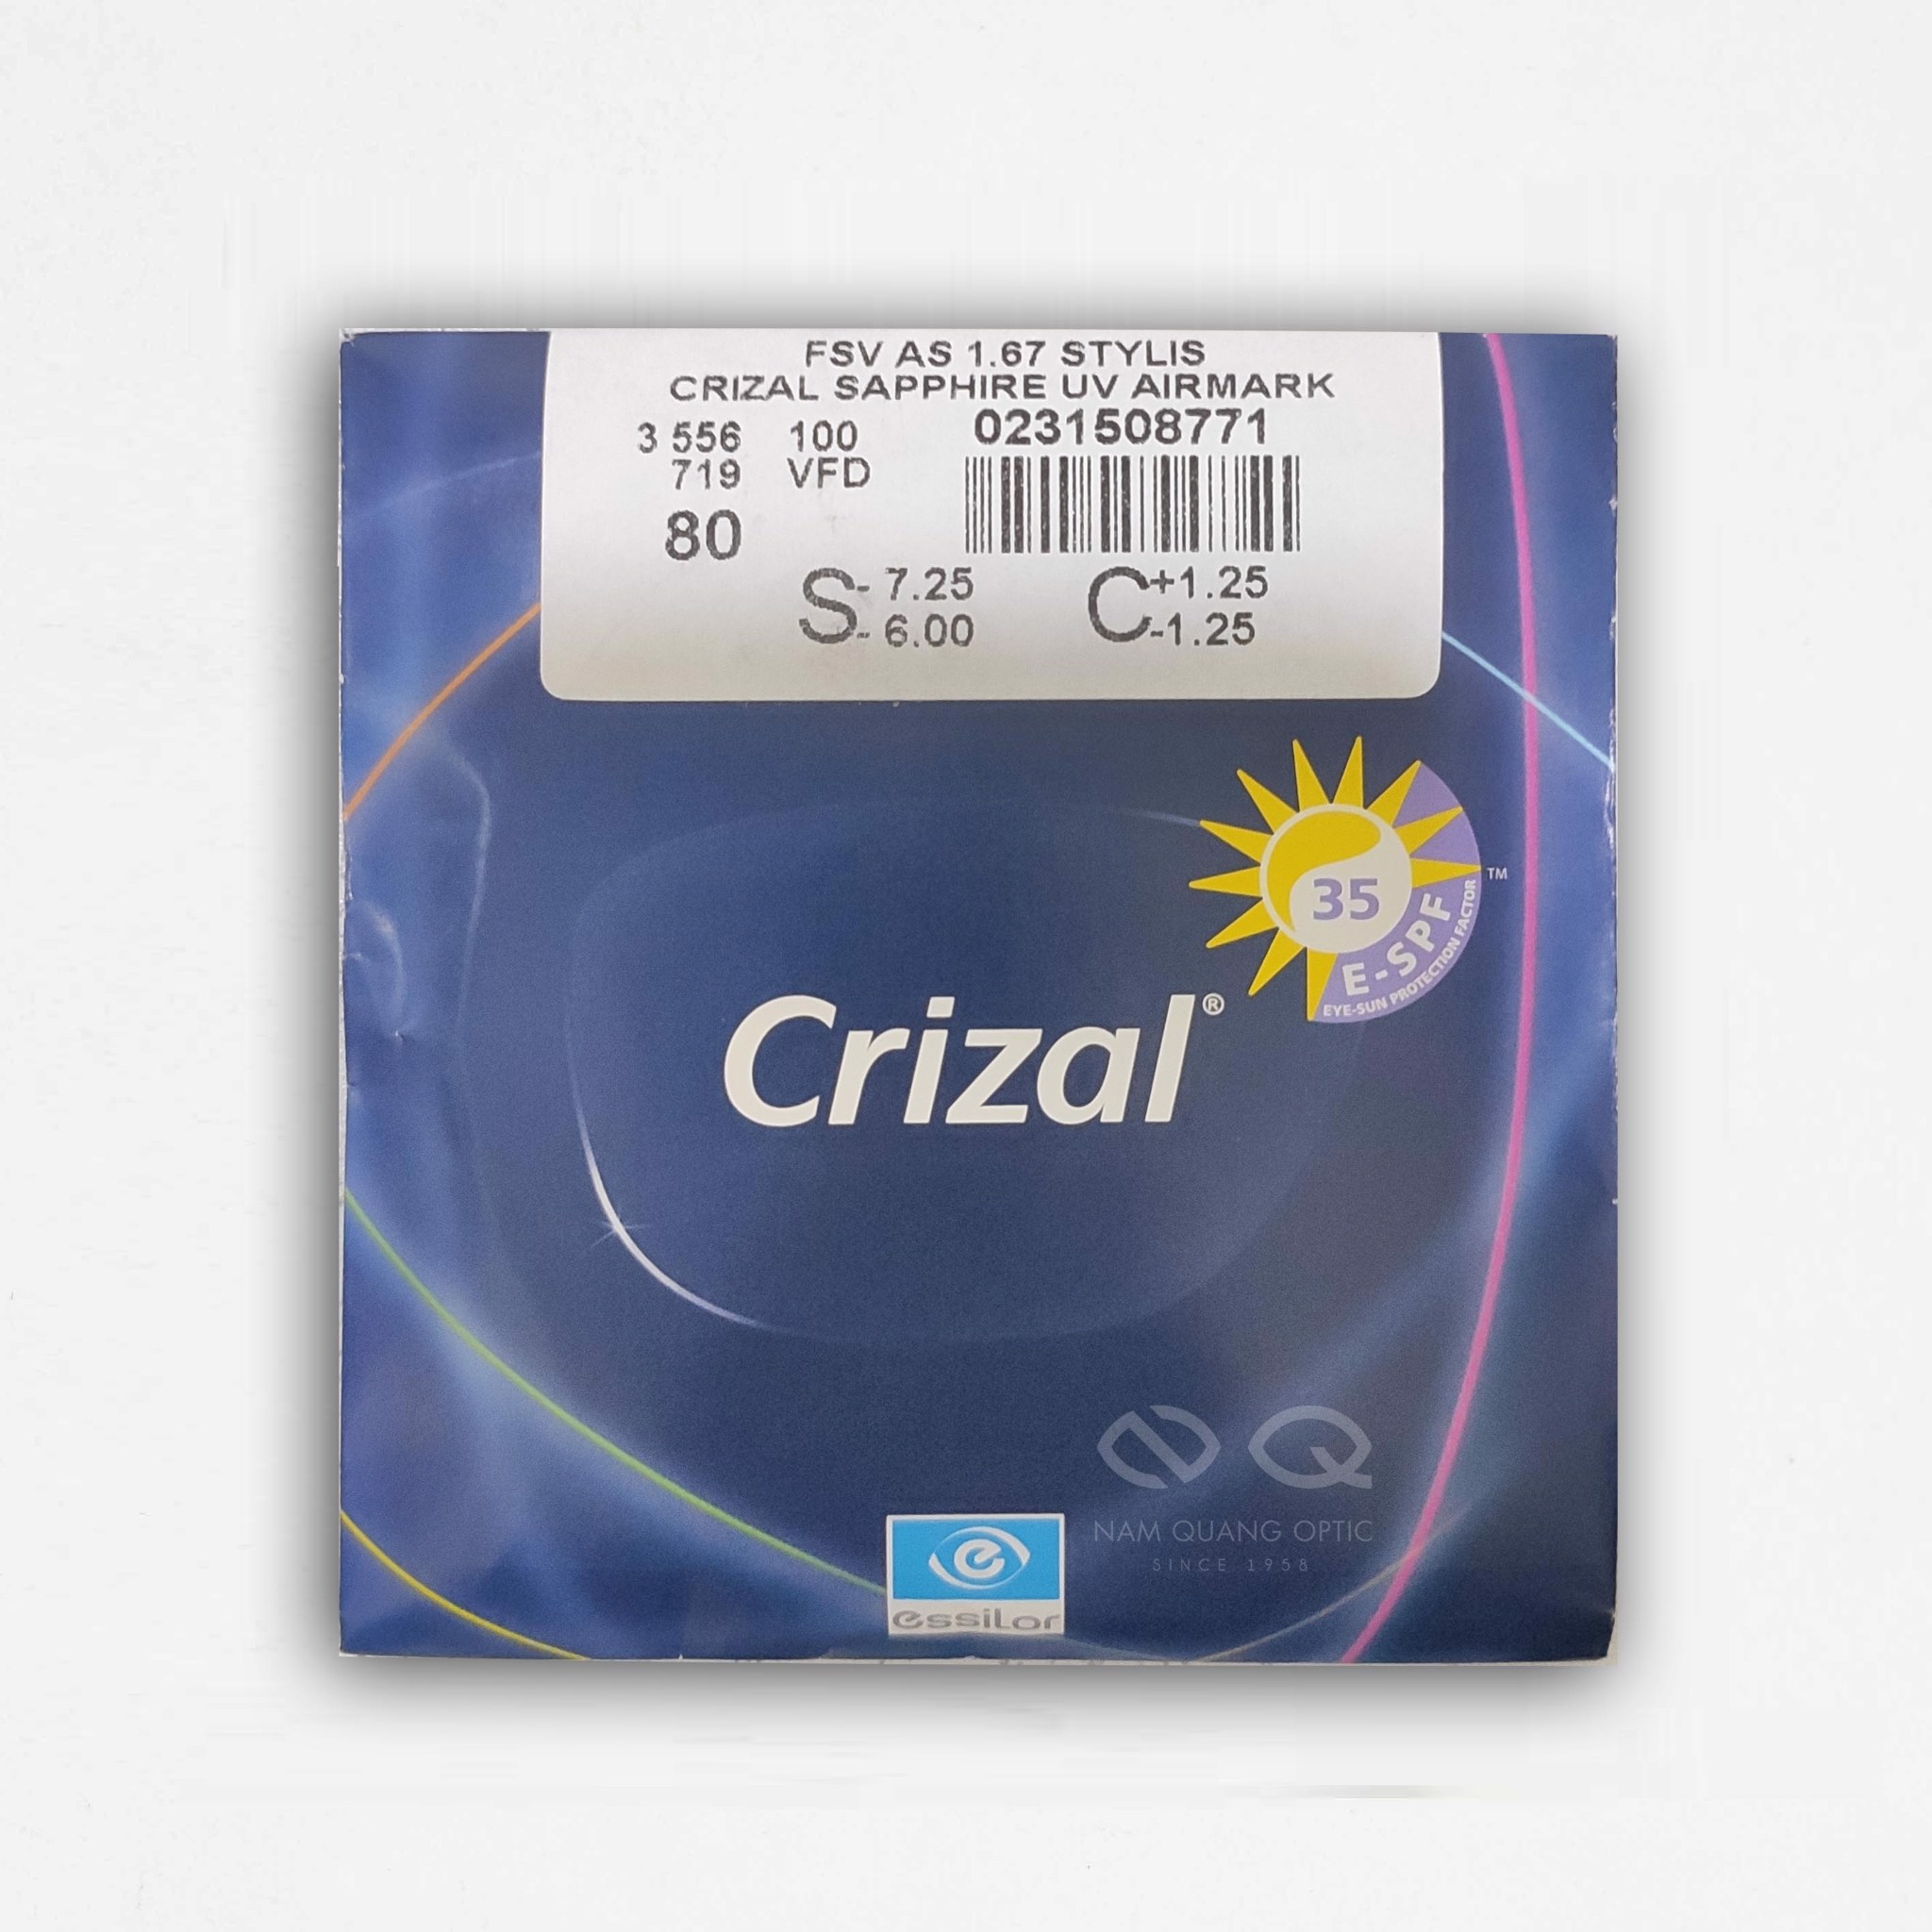 Order Trong Crizal Sapphire 360UV156